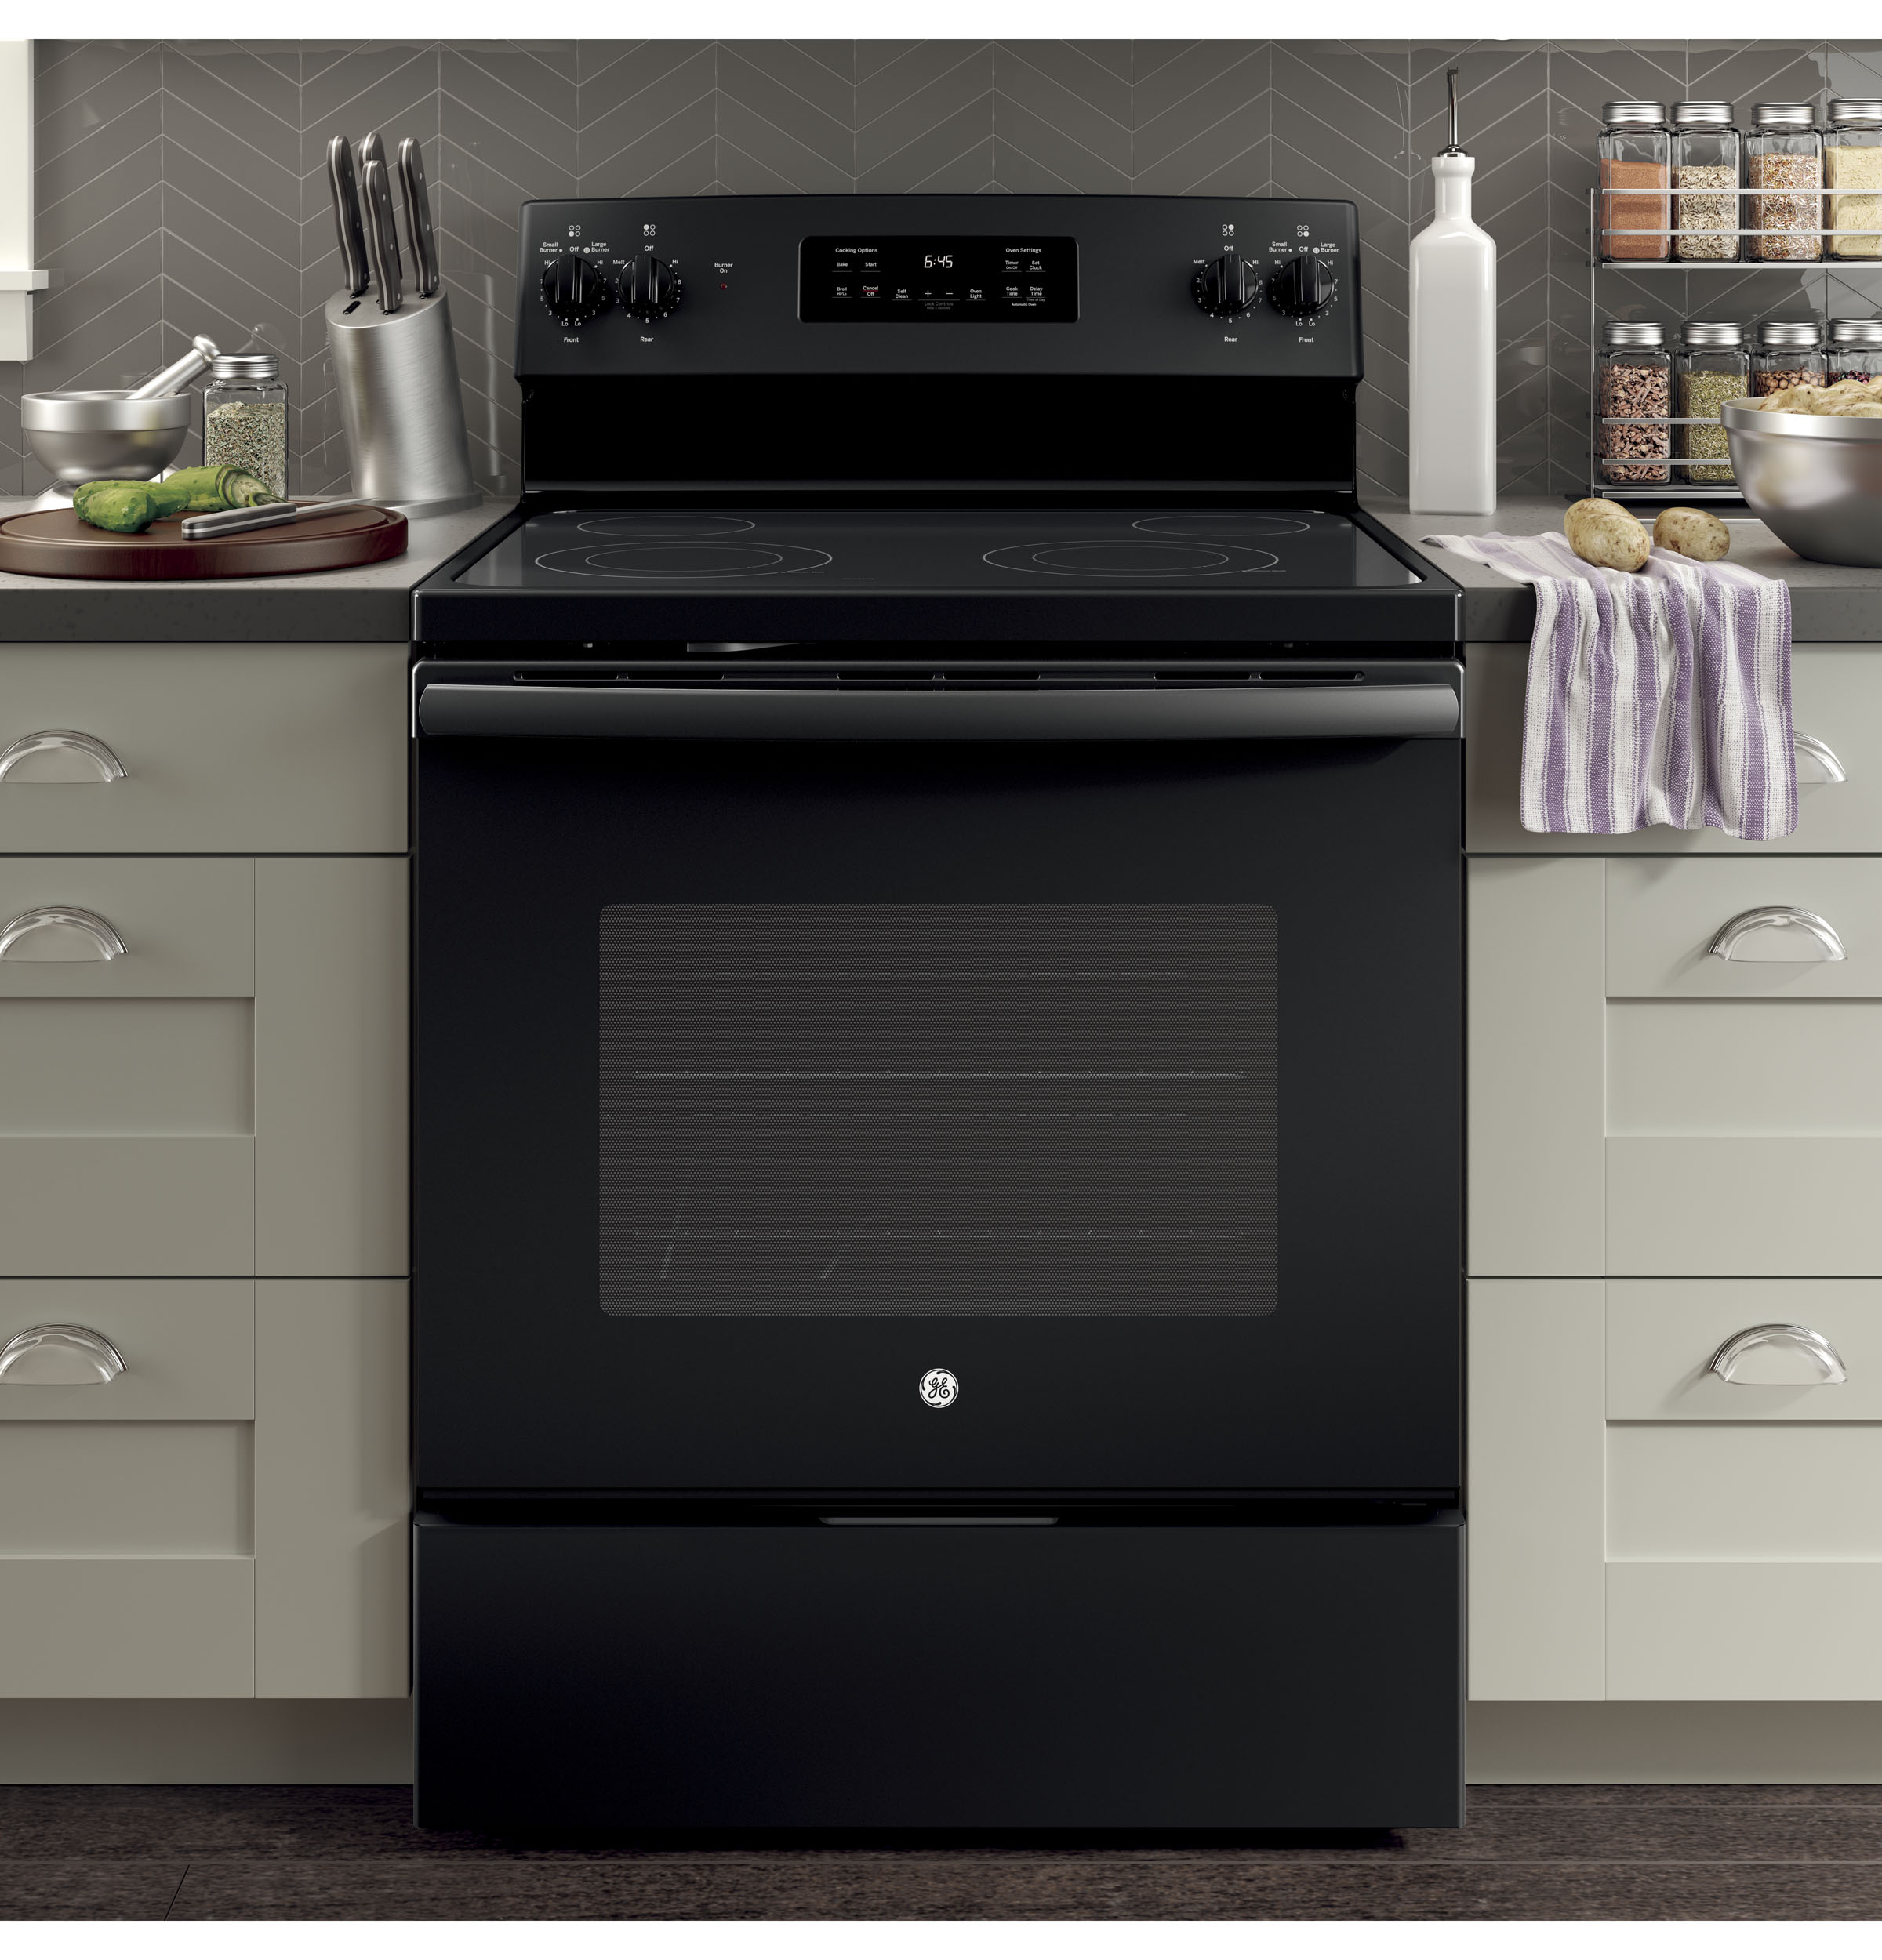 Ge 30 Free Standing Electric Range Jb645dkbb Appliances Want To Install A New 40 Amp Oven Have 50 Circuit 1 Of 10